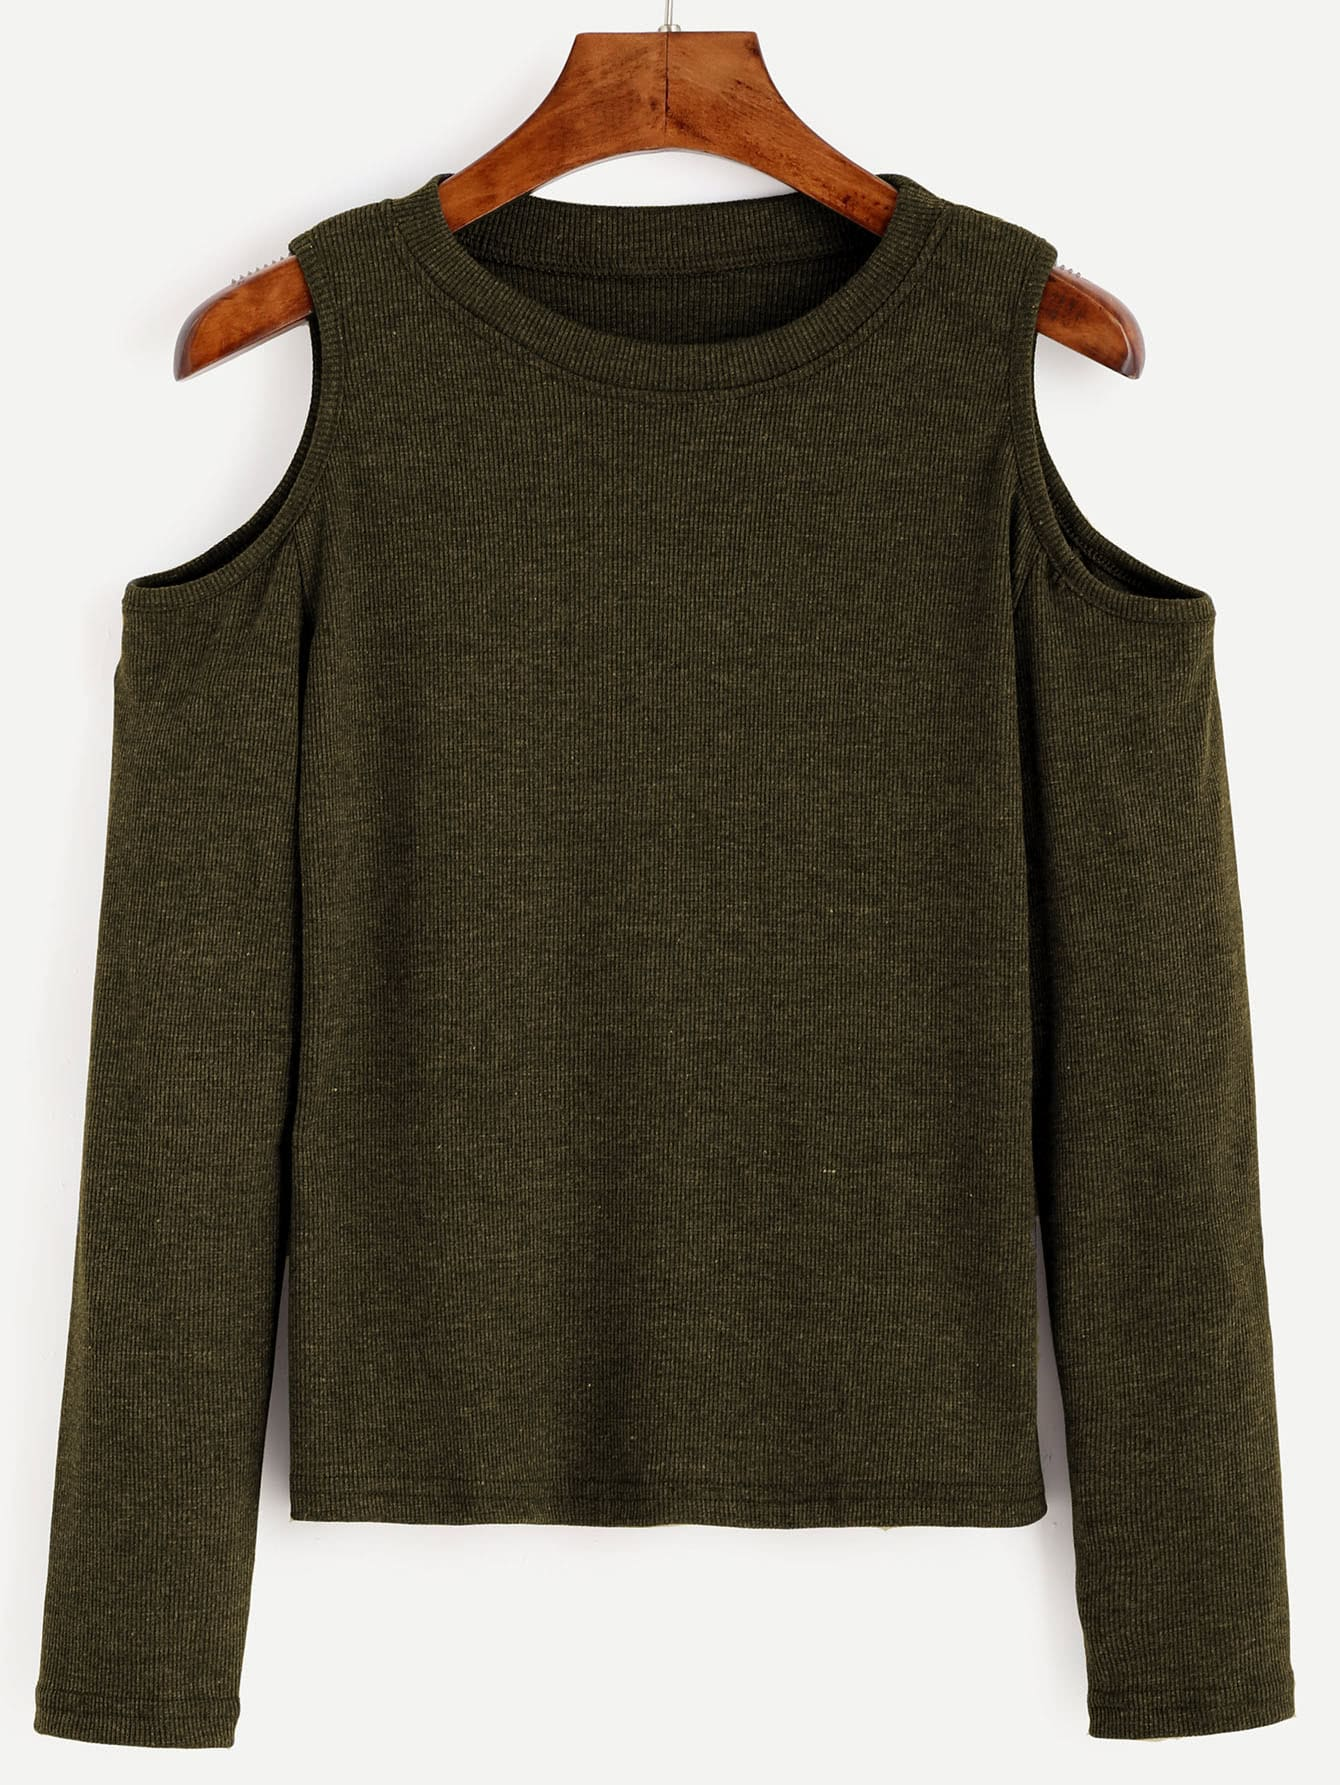 Army Green Open Shoulder Knit T-shirtArmy Green Open Shoulder Knit T-shirt<br><br>color: Green<br>size: M,S